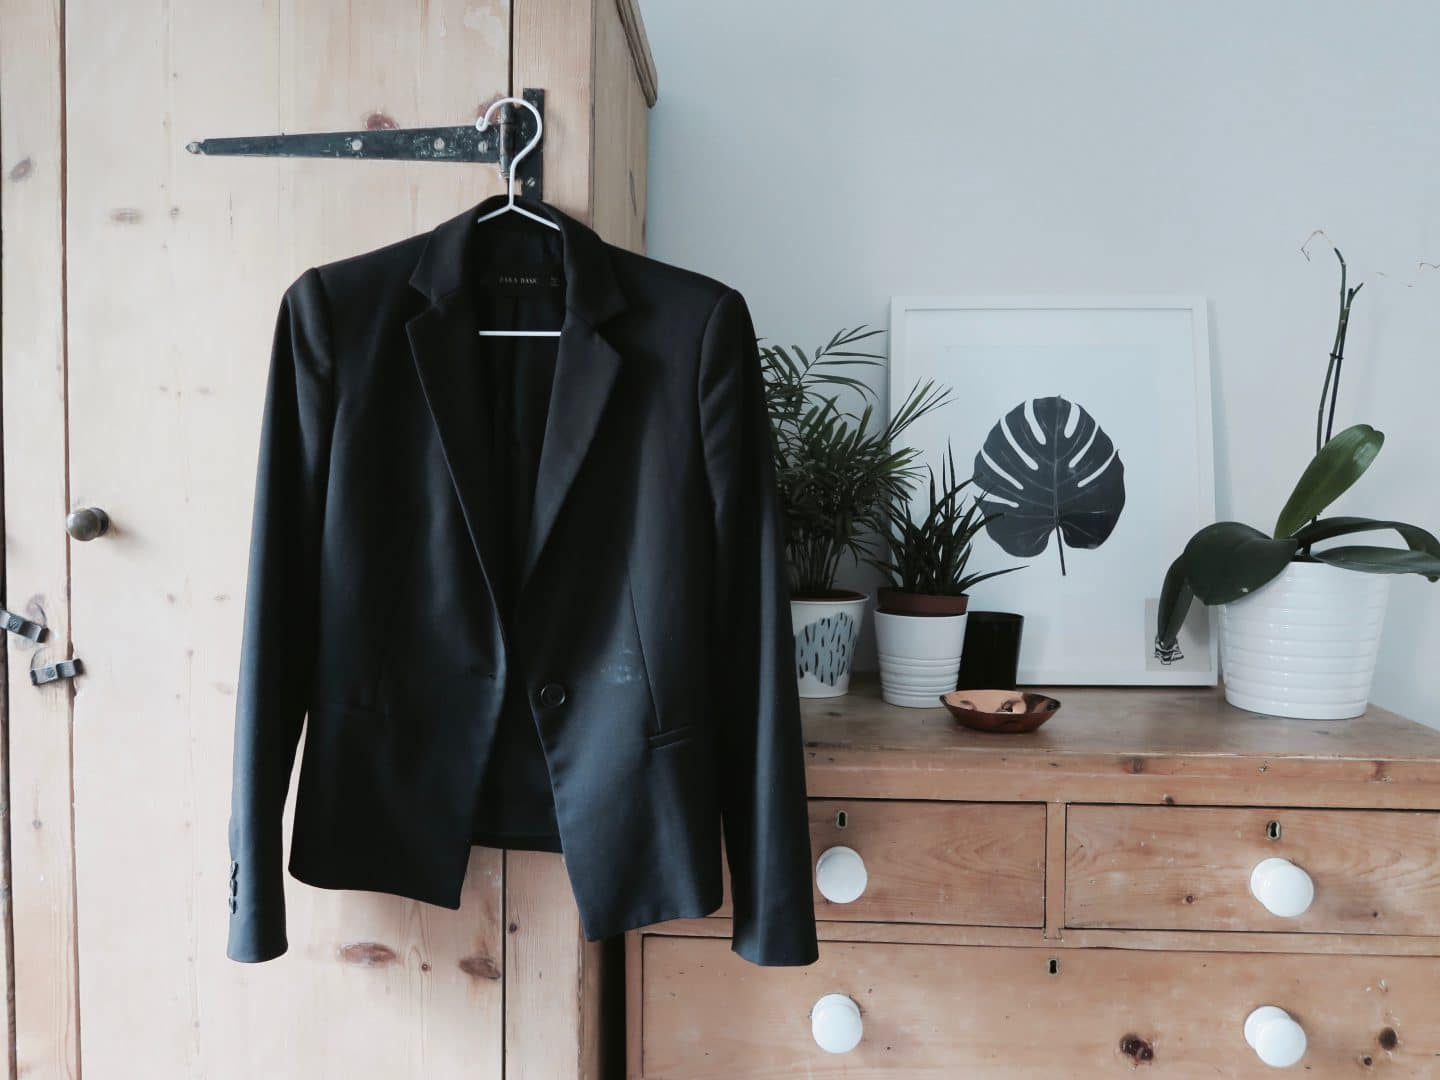 Black blazer investment piece | Curiously Conscious